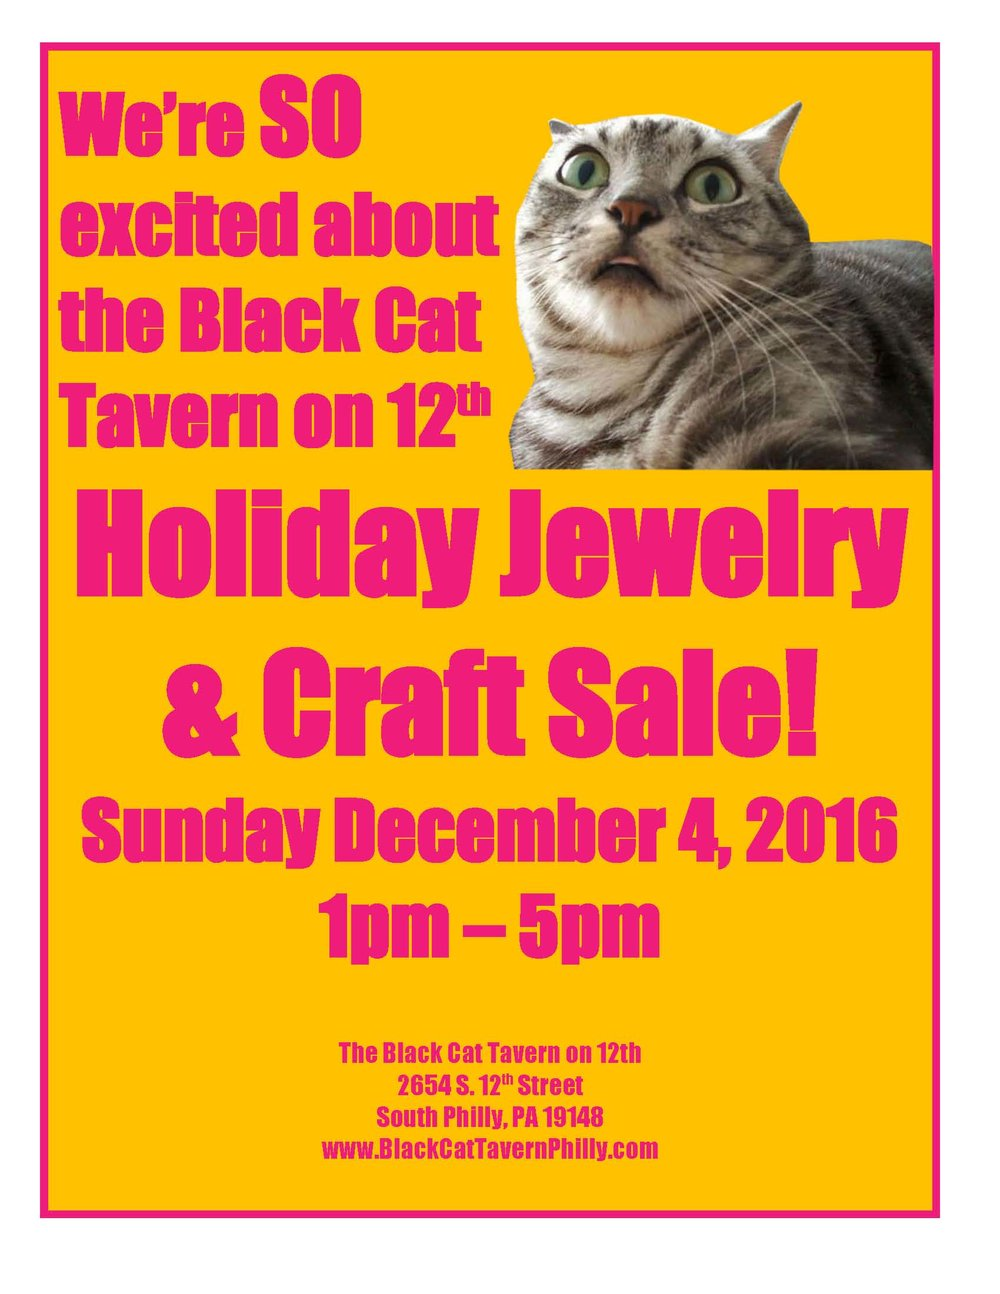 Holiday Jewelry & Craft Sale Graphic.jpg